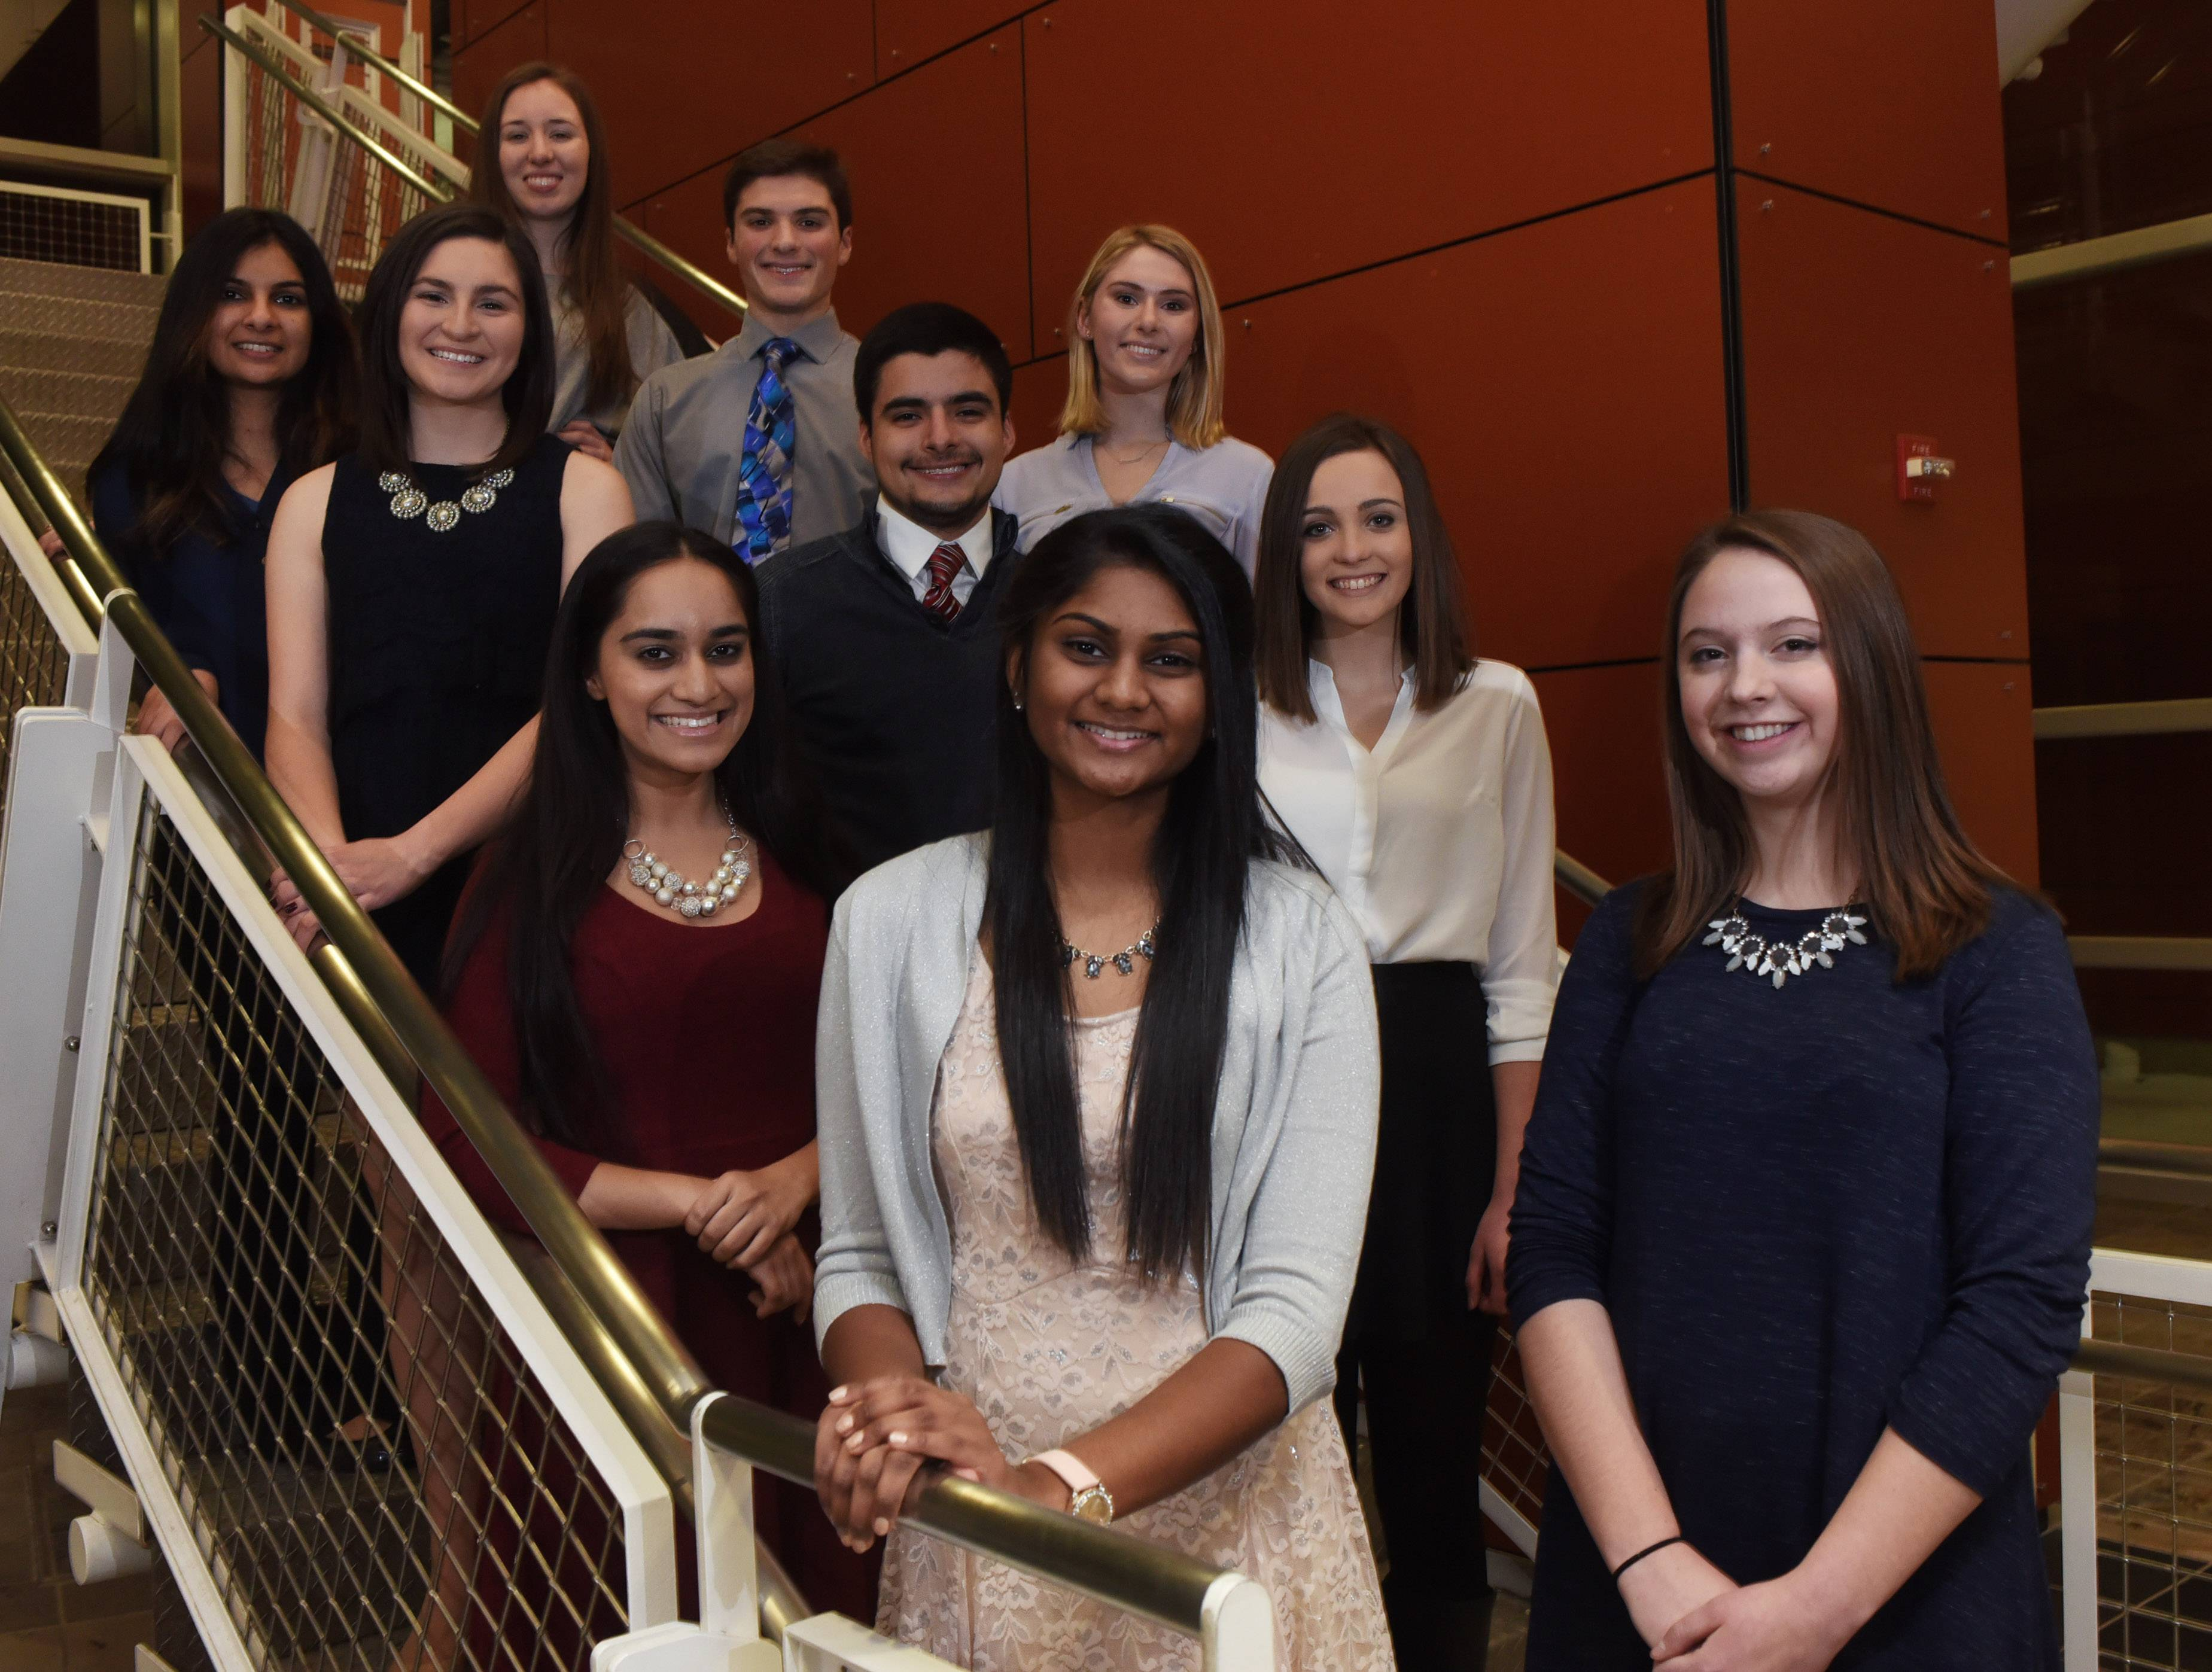 Members of the Northwest suburban Leadership Team gather at Harper College. At left, bottom to top are Ashley Prabakar, Hoffman Estates High School; Millen Srivastava, Barrington High School; Kristina Dominguez, Buffalo Grove High School and Aneri B. Patel, Maine East High School. At right, bottom to top; Natalie Brady, Rolling Meadows High School; Nicole Ricken, William Fremd High School; Christopher Nevarez, Barrington High School (in the middle); Karly Rose Grapenthin, Palatine High School; Justin Cruz, St. Viator High School and Julia Niklewicz, John Hersey High School.